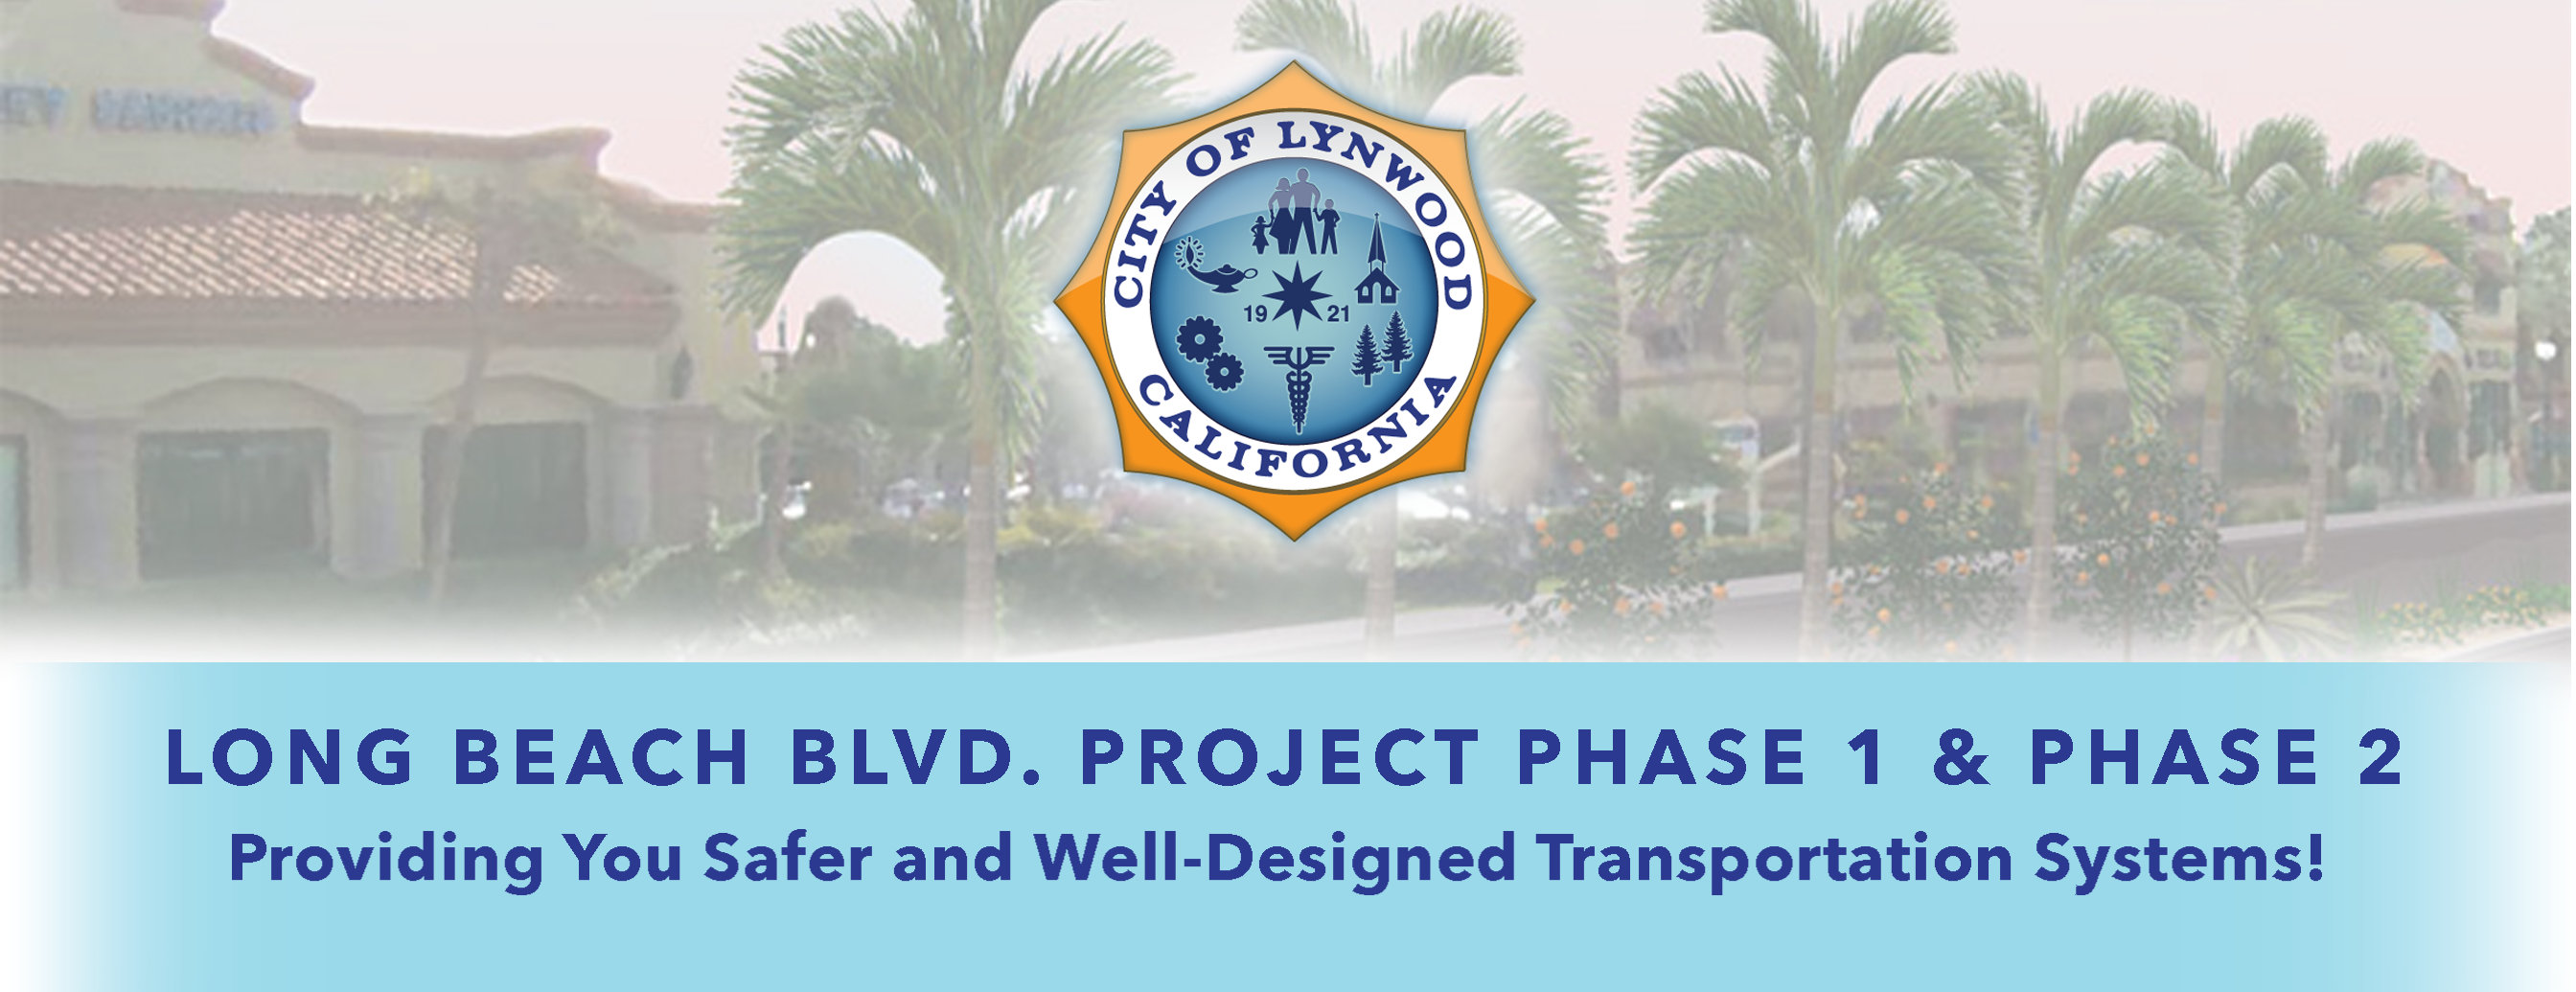 LONG BEACH BOULEVARD PROJECT HEADER